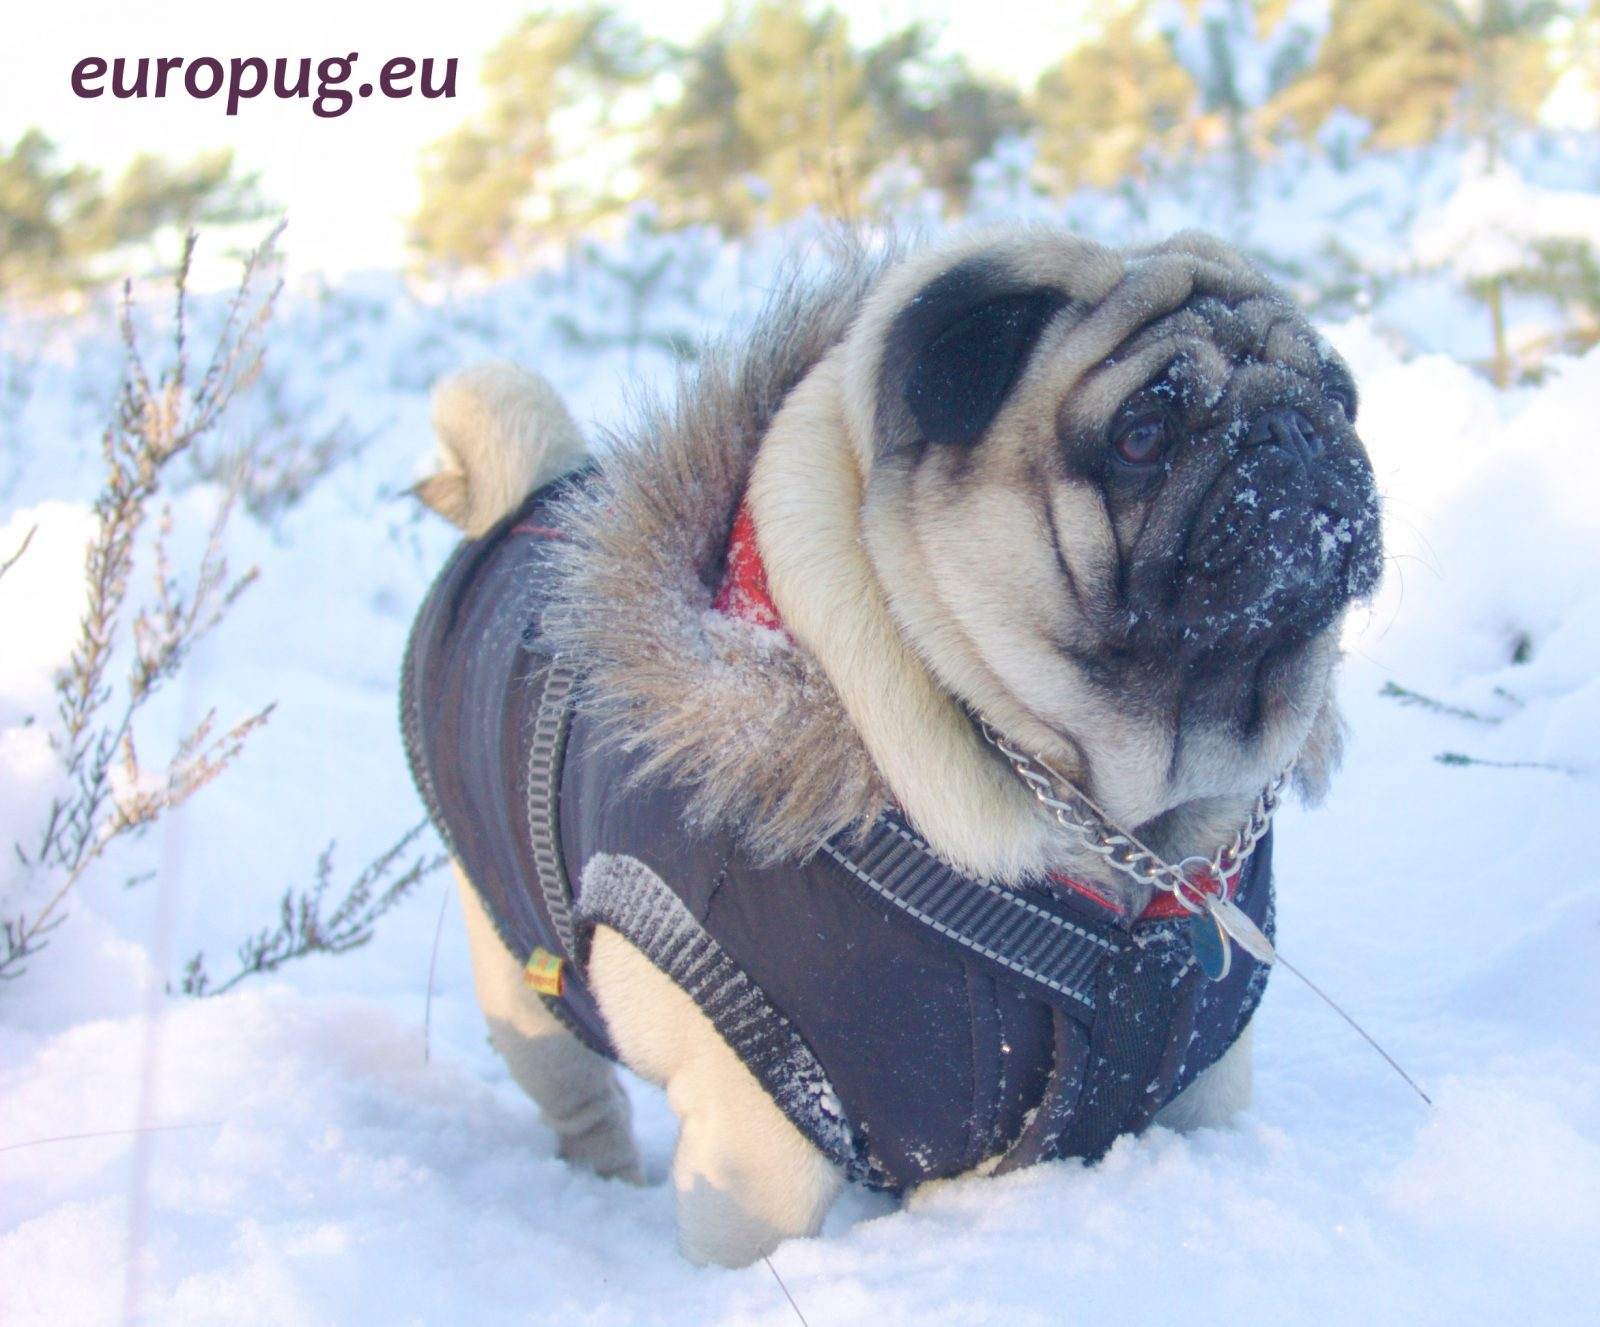 Cold snow and hot pug